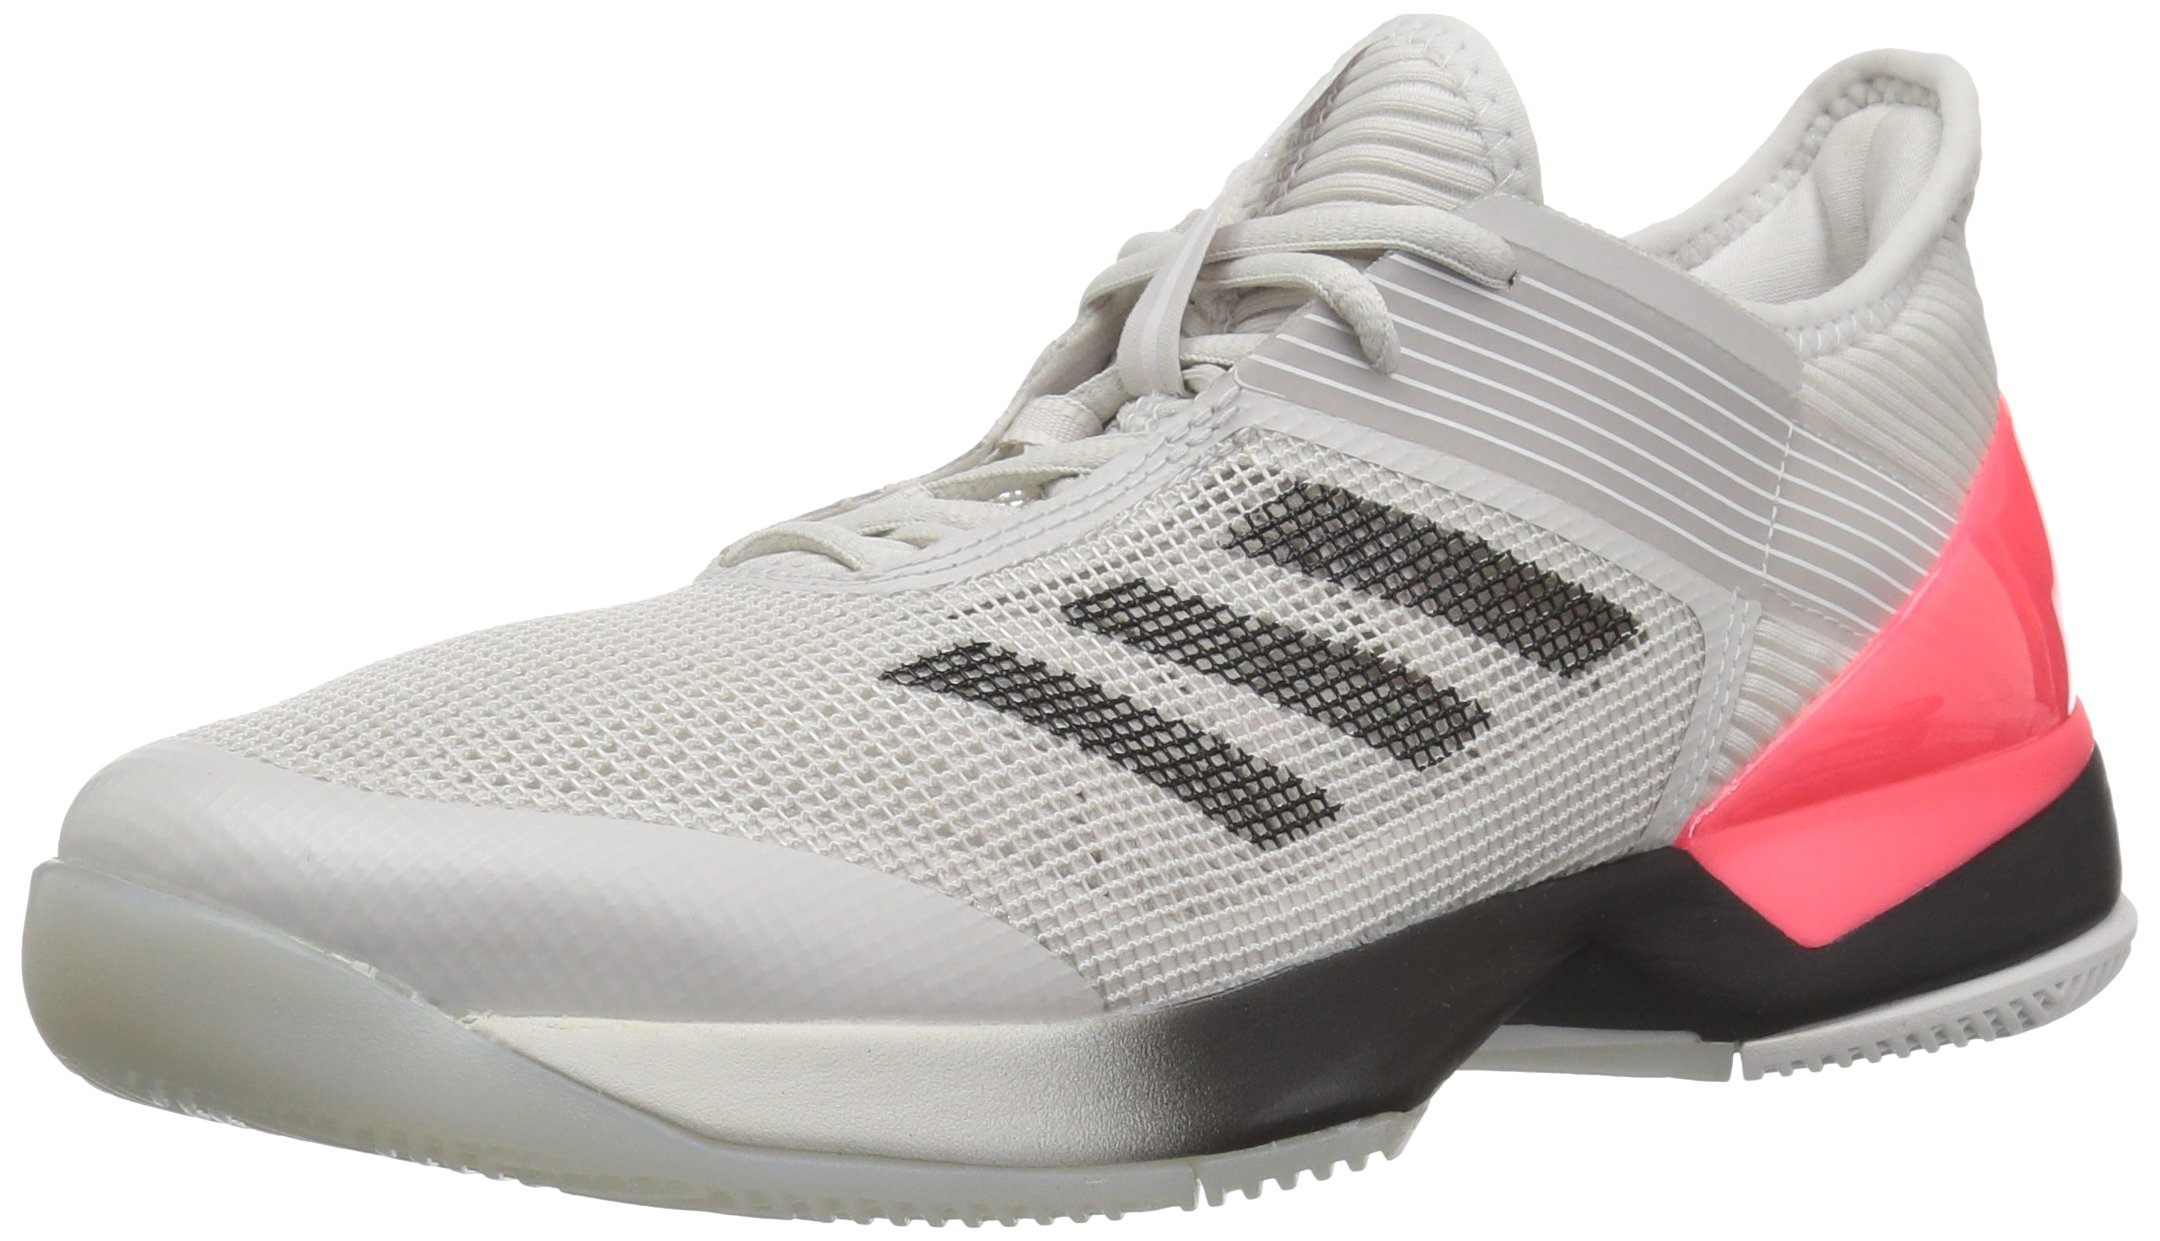 adidas Women's Adizero Ubersonic 3 Tennis Shoe, Grey/Black/White, 9.5 M US